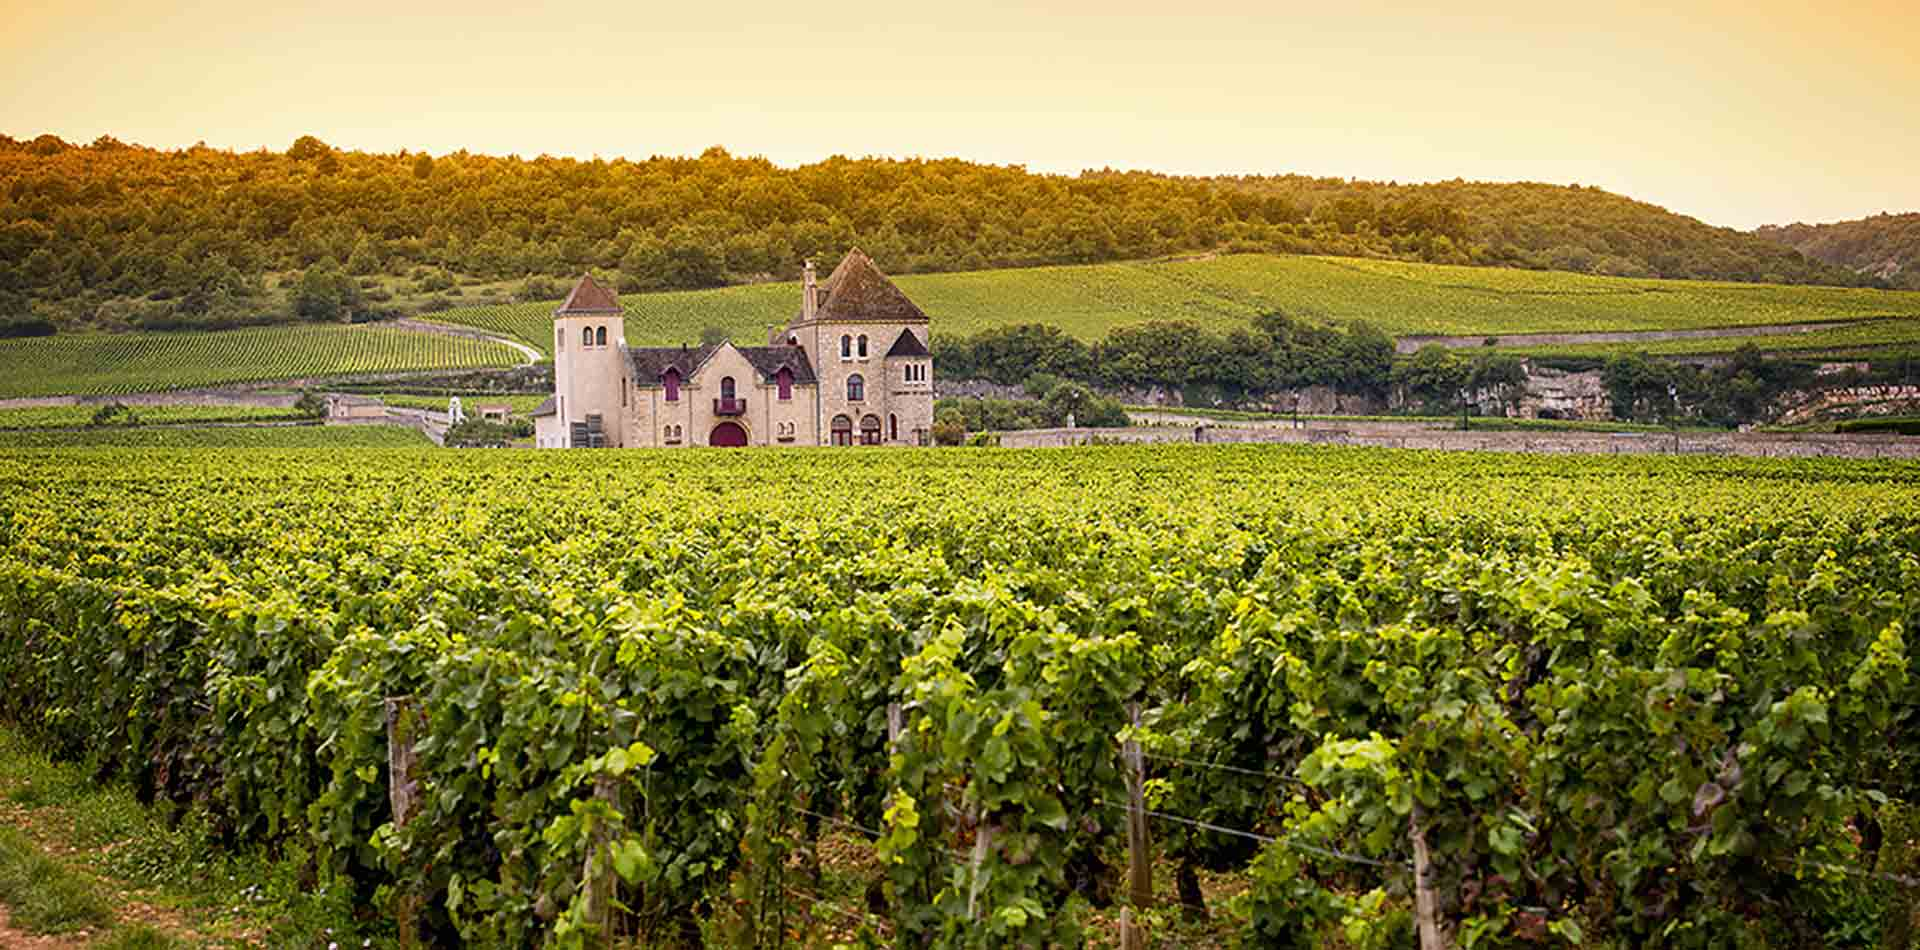 Europe France river Rhone cruising beautiful chateau surrounded by vineyards-luxury vacation destinations